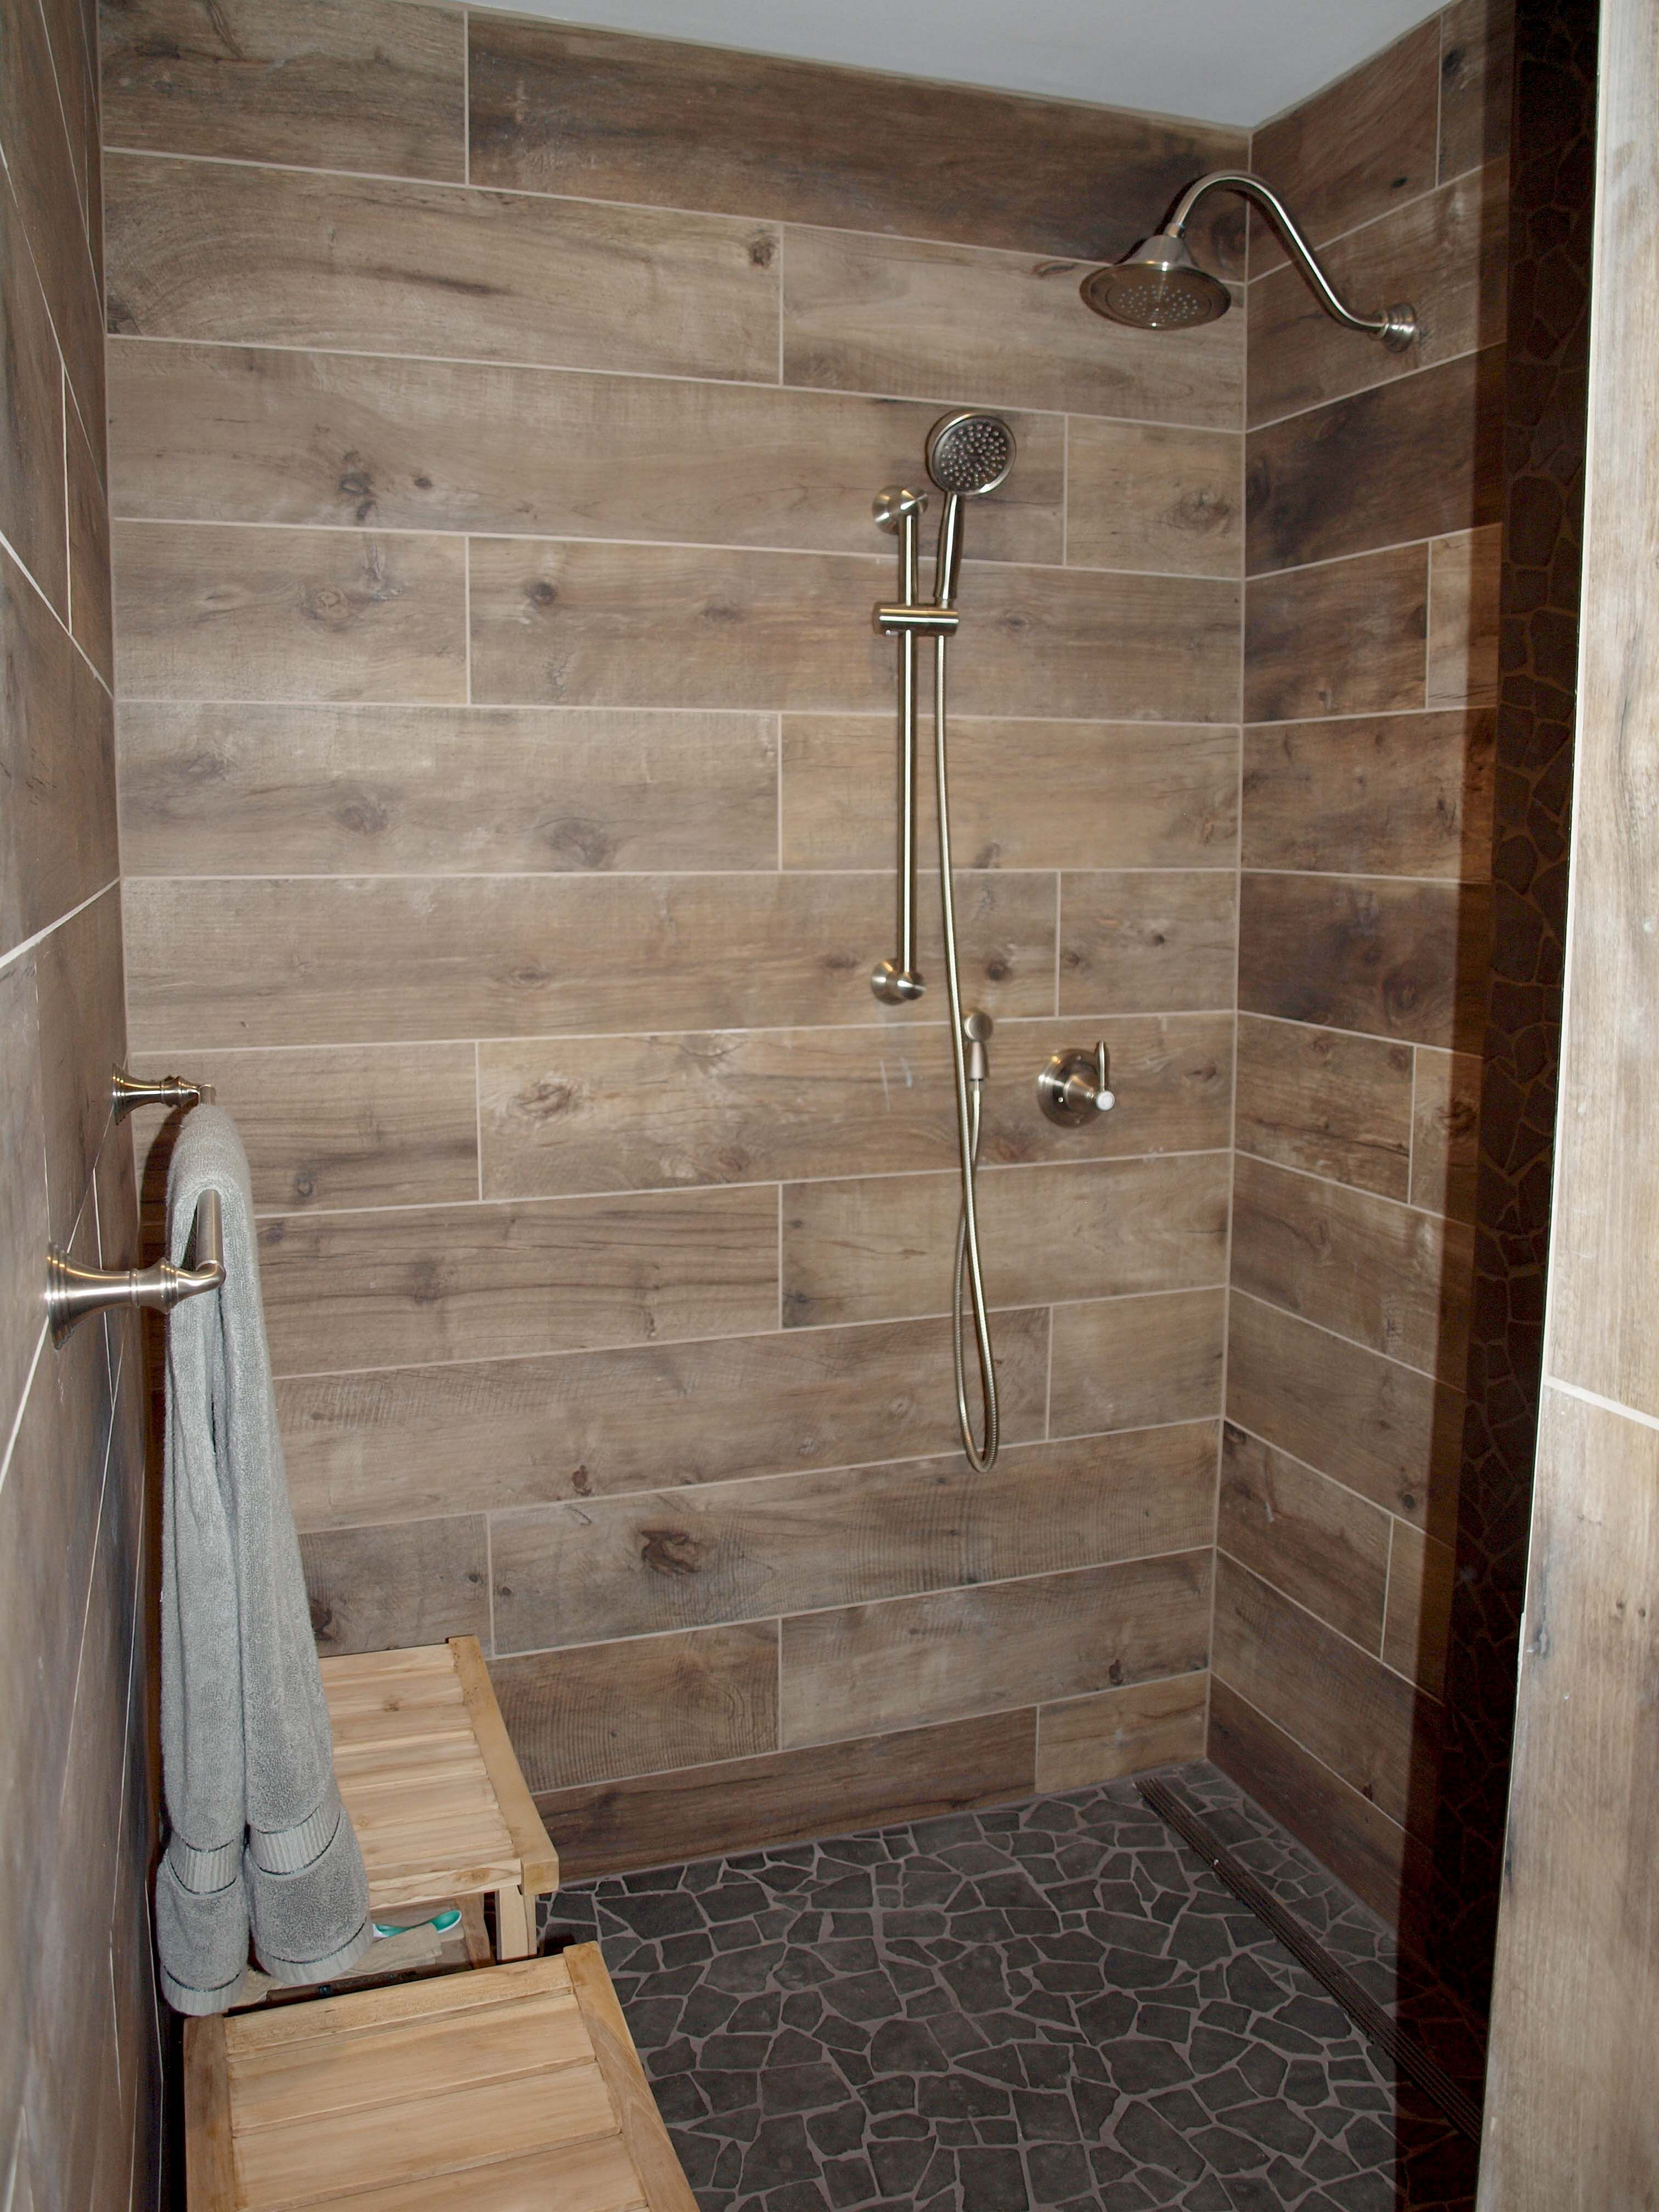 Nice 24 Astonishing Bathroom Shower Design Ideas For Simple Bathroom Https Teracee Com Bathroom Ideas 24 Marv Simple Bathroom Wood Tile Shower Shower Remodel